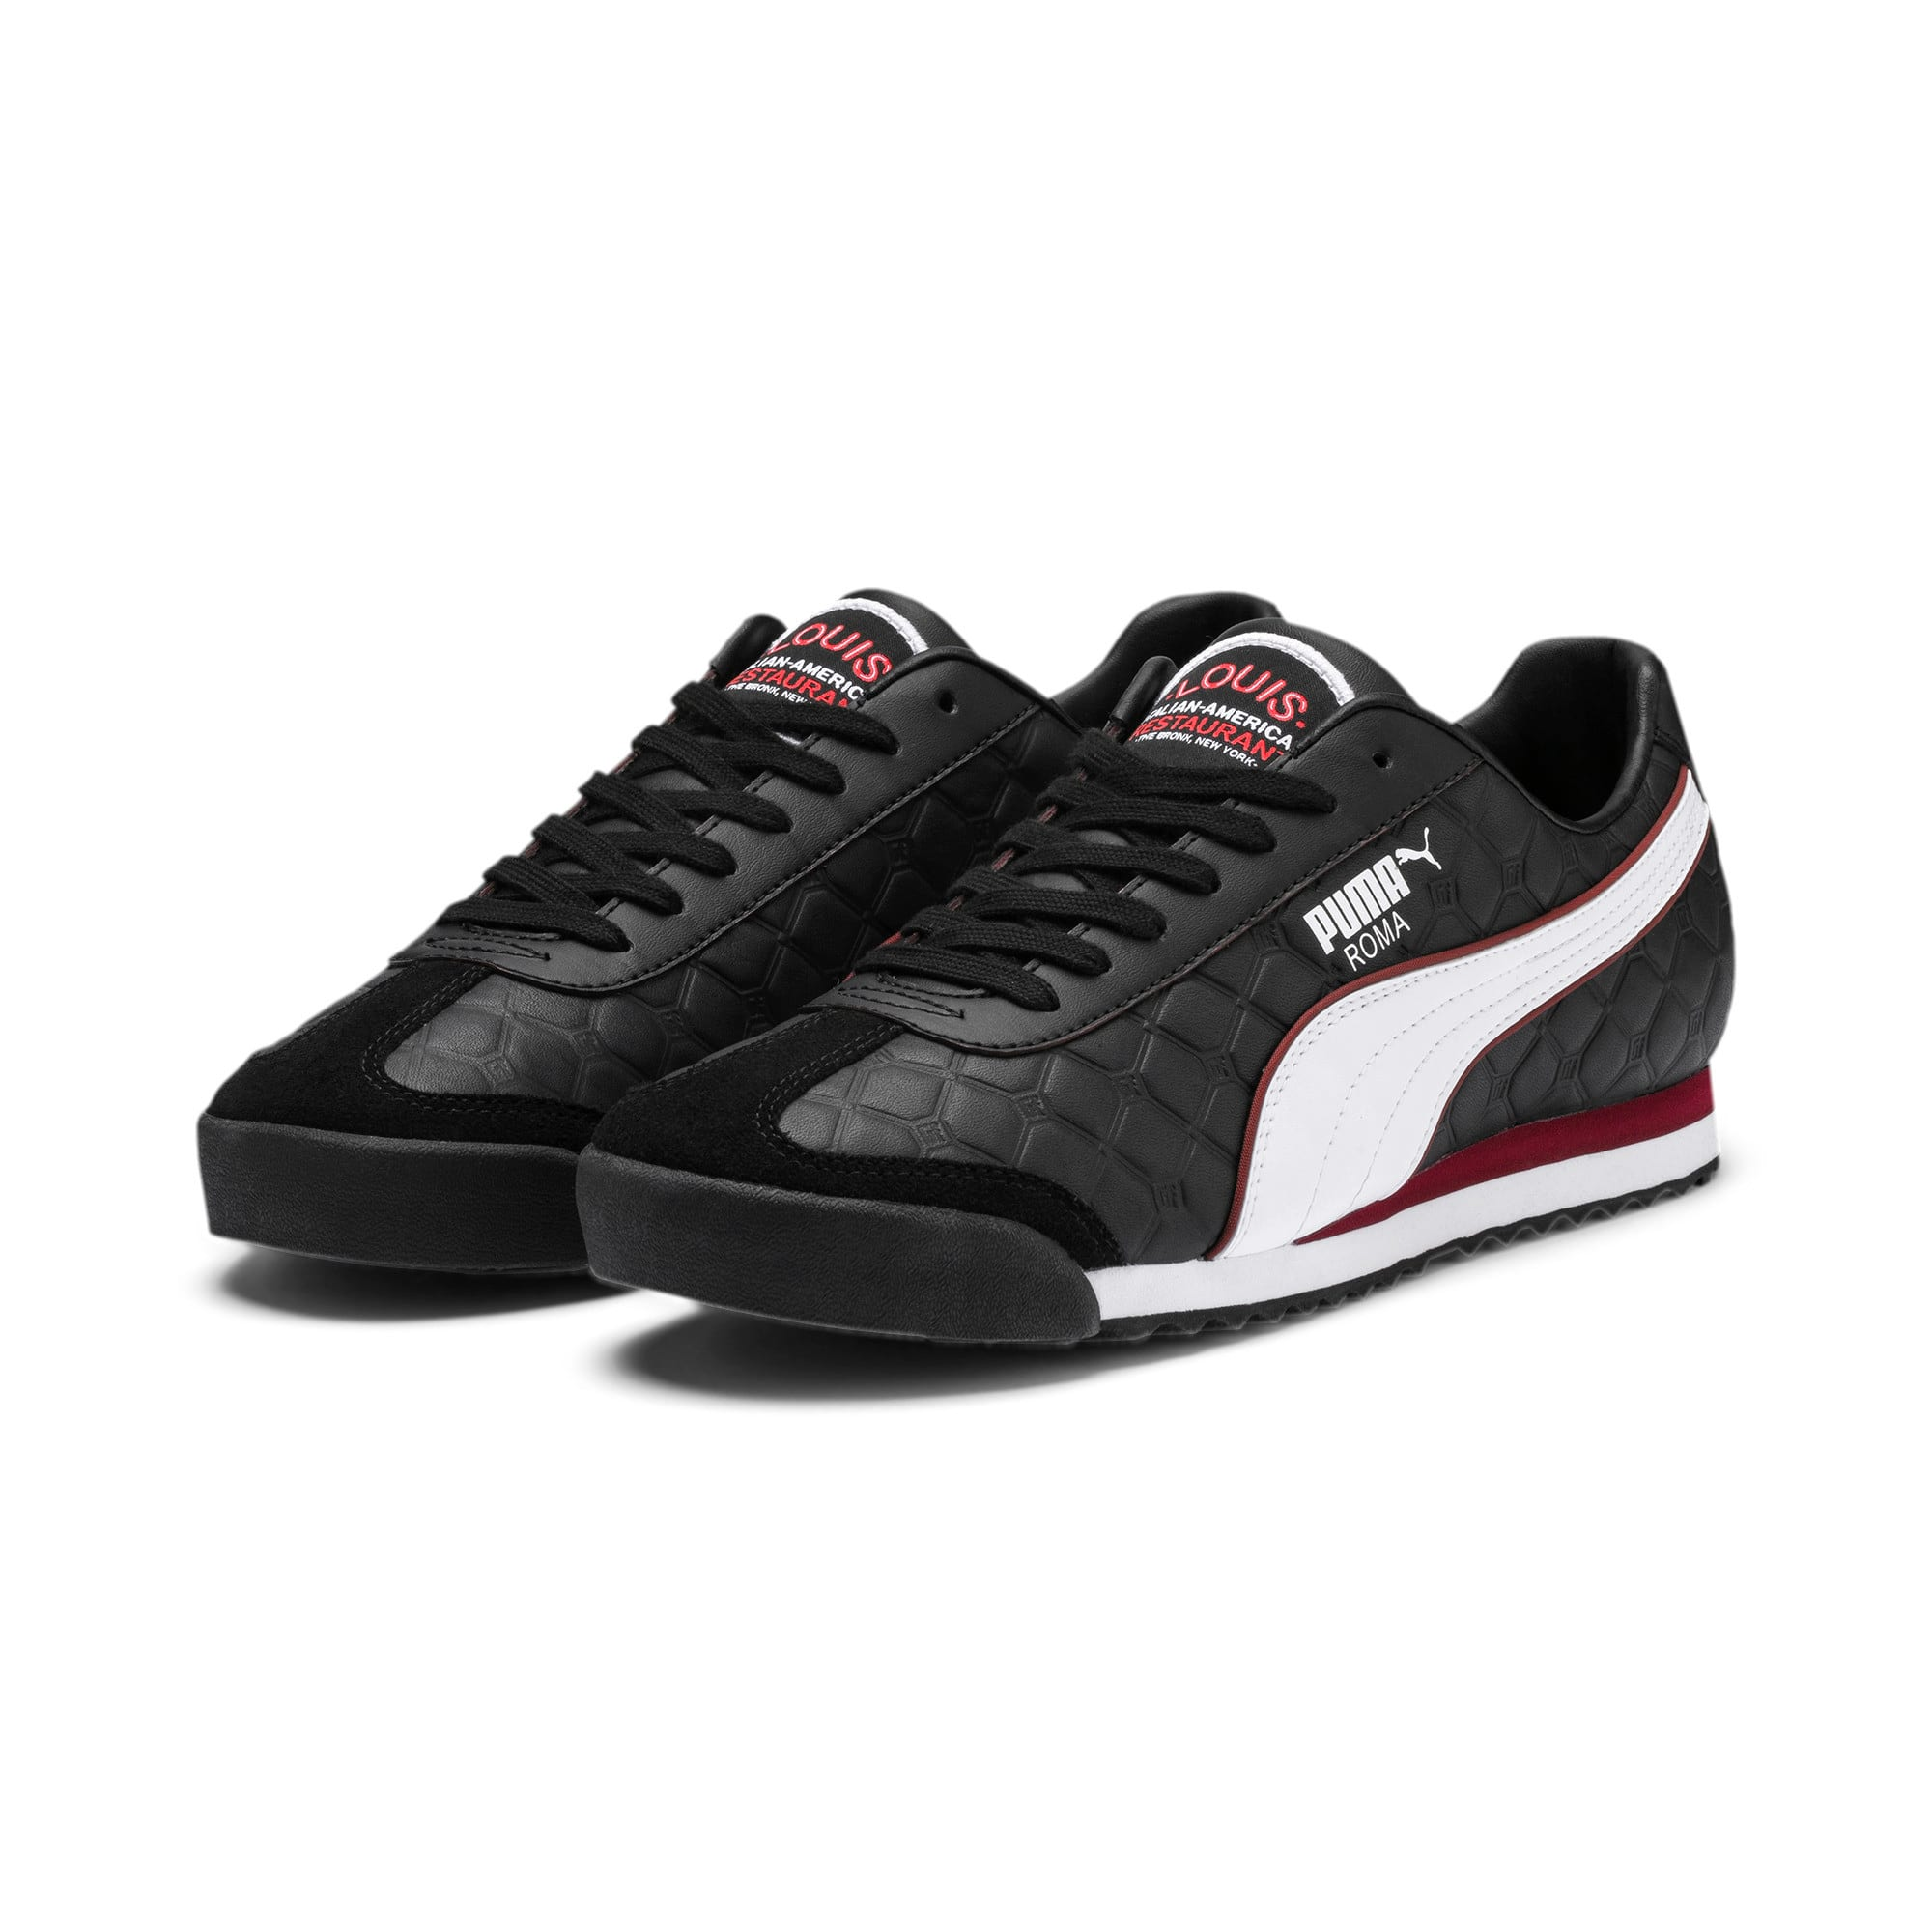 Thumbnail 2 of Roma x The Godfather LOUIS Herren Sneaker, Puma Black-Fired Brick, medium